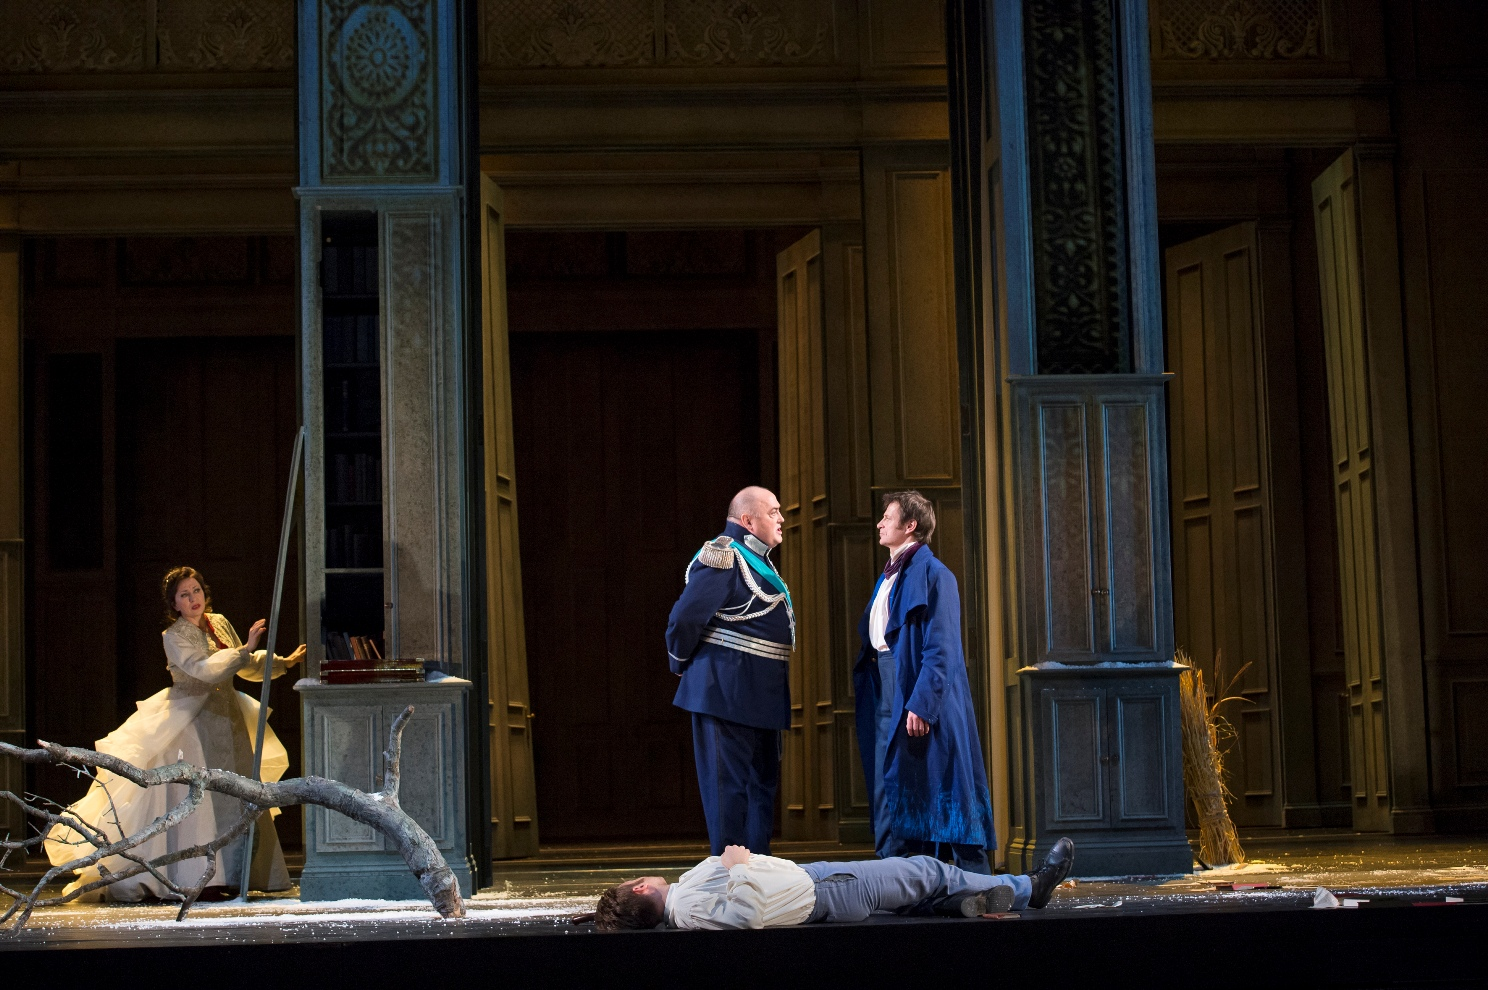 Scene from the final scene of the Royal Opera Eugene Onegin